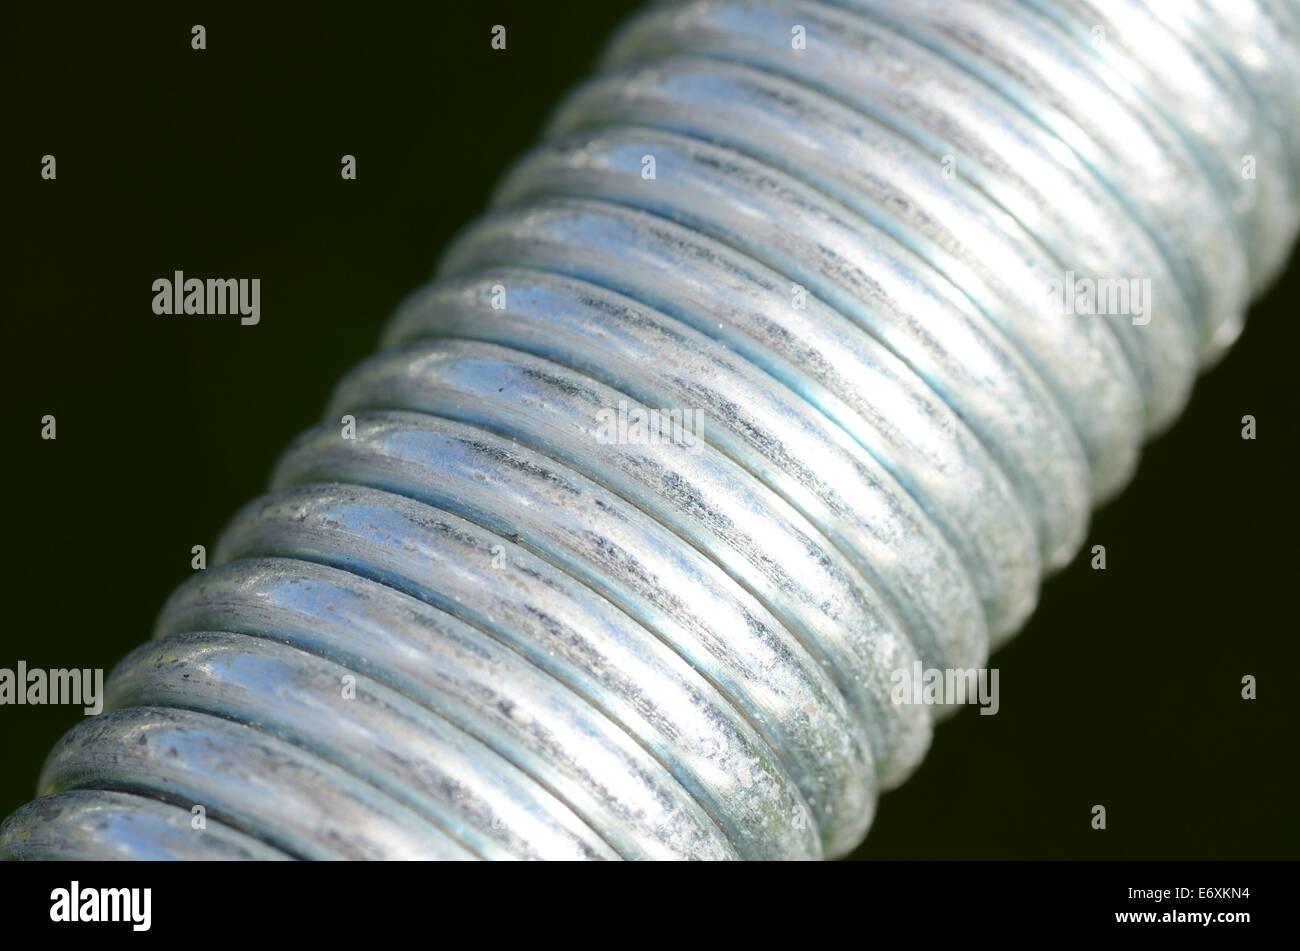 Coiled Spring Stock Photos & Coiled Spring Stock Images - Alamy